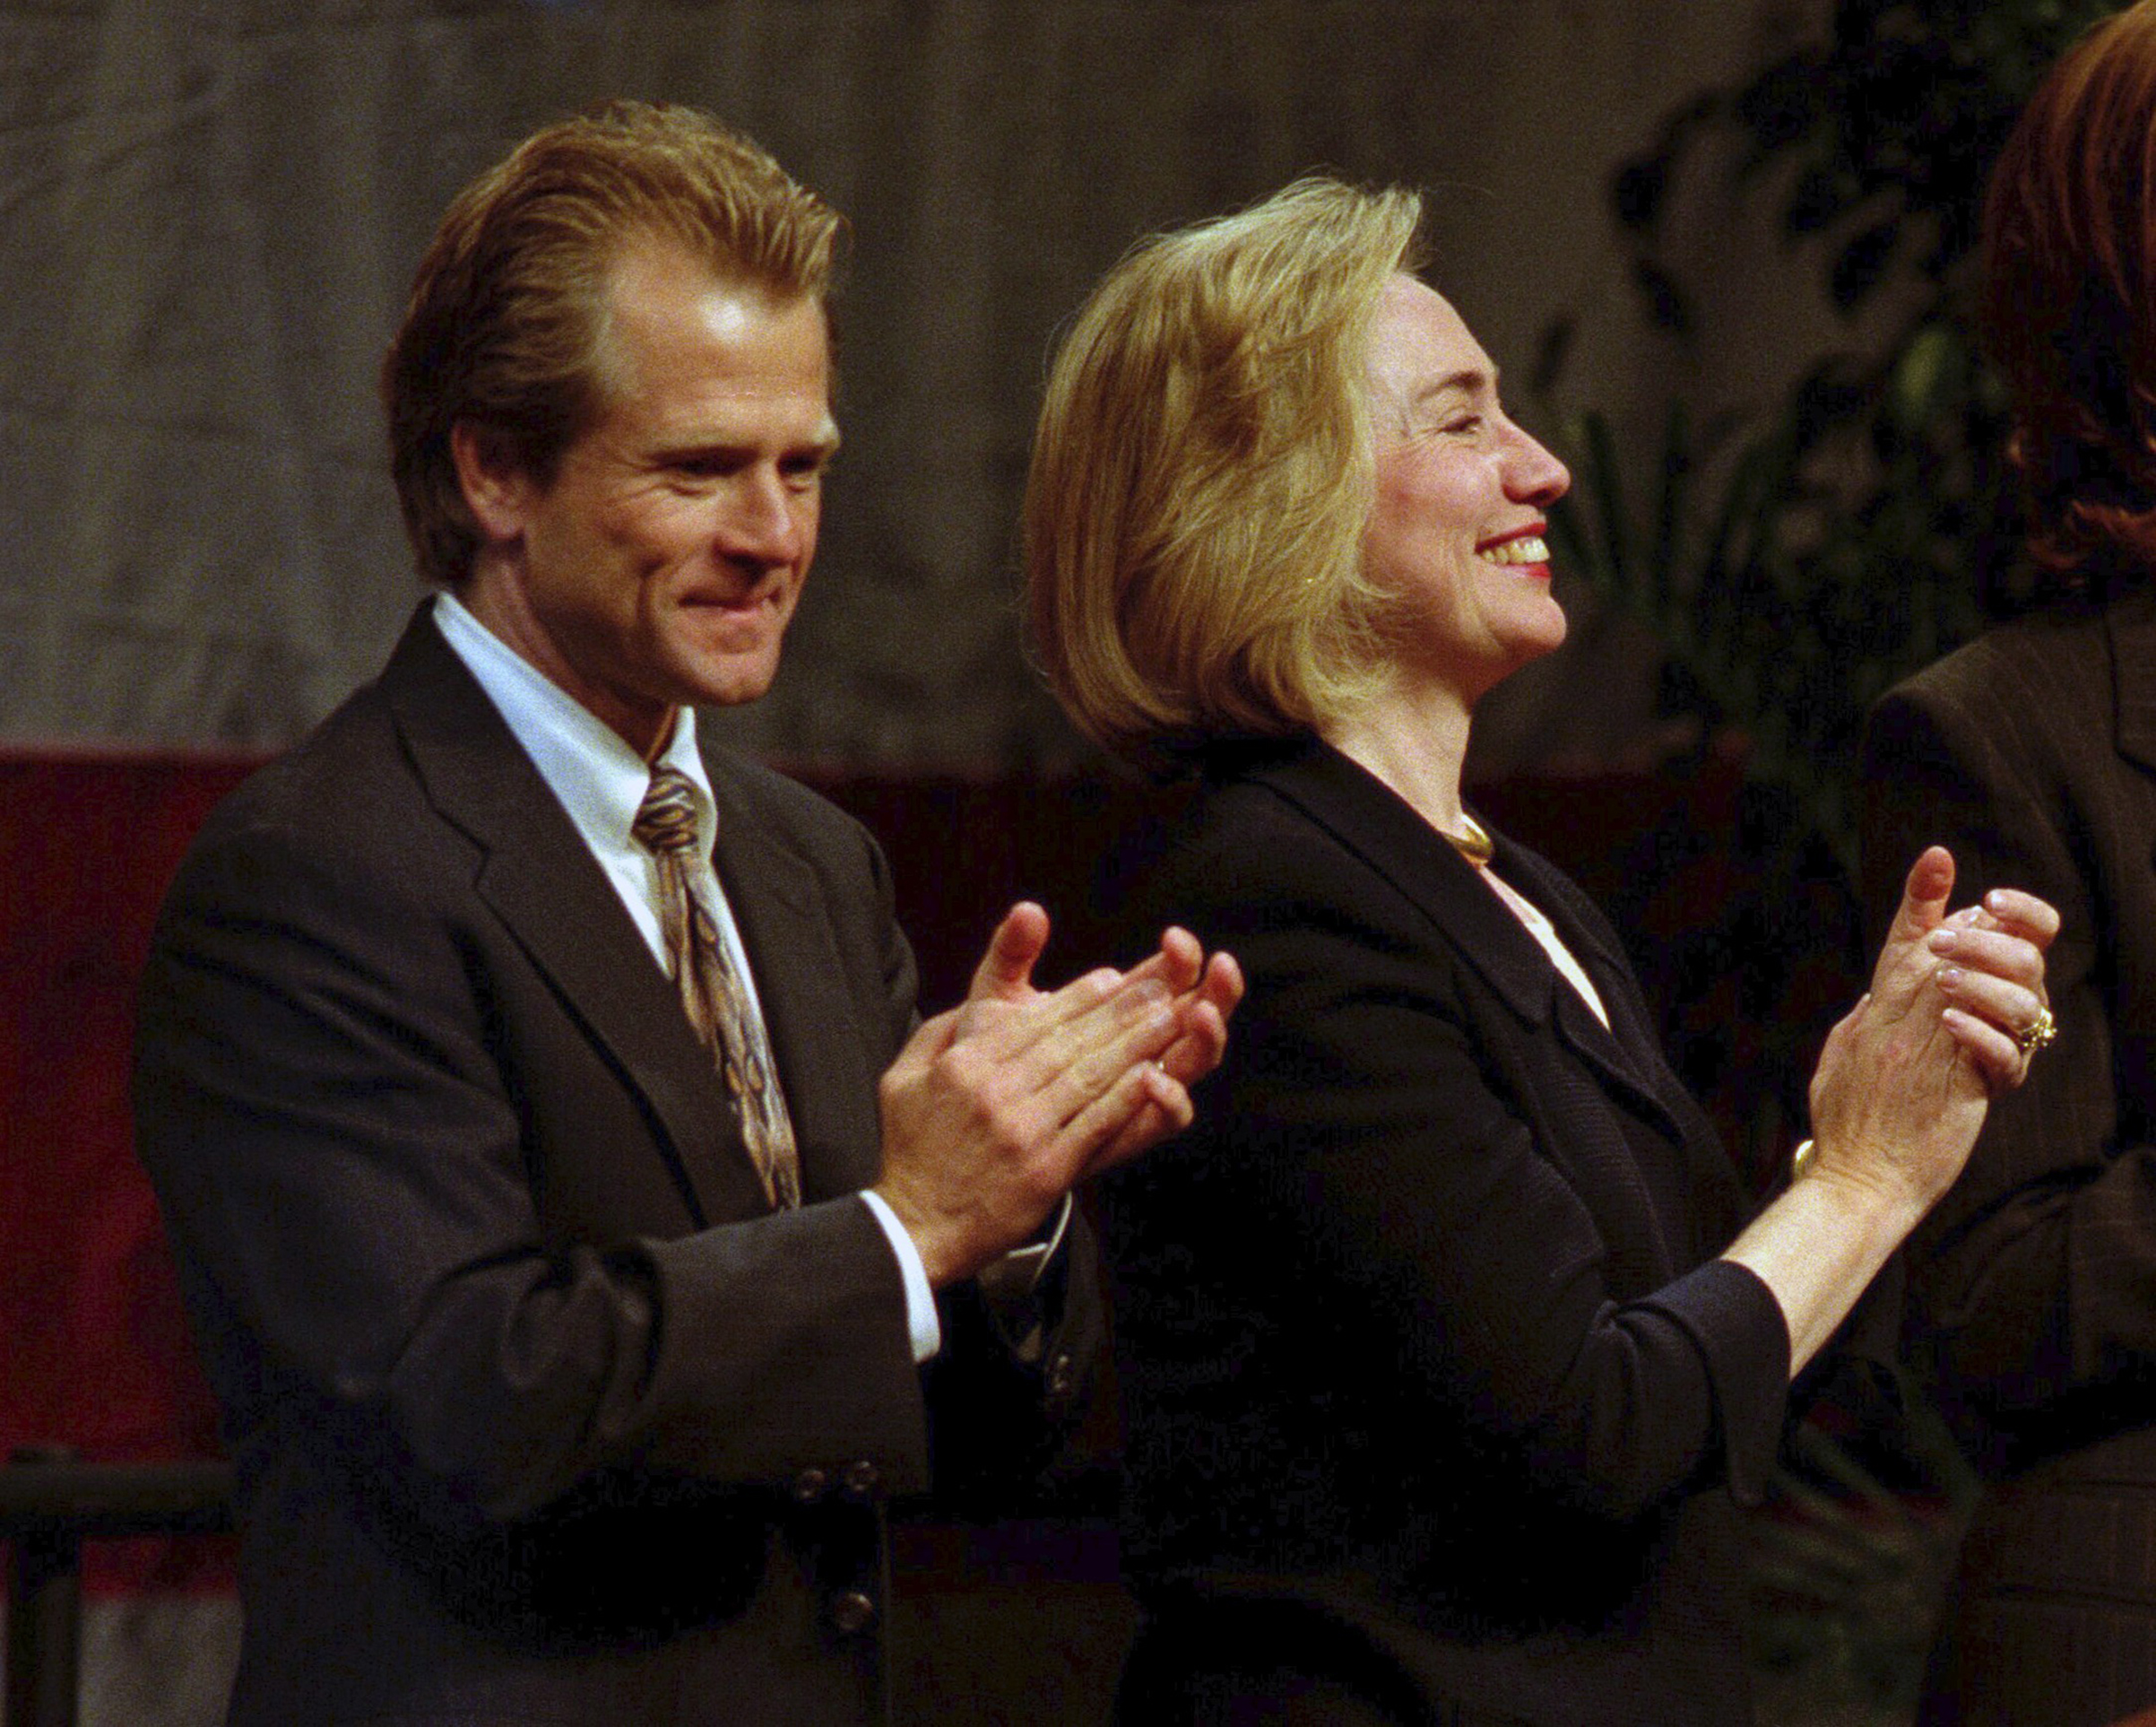 Hillary Clinton campaigned for Navarro in 1996, the year he ran for Congress as a progressive Democrat